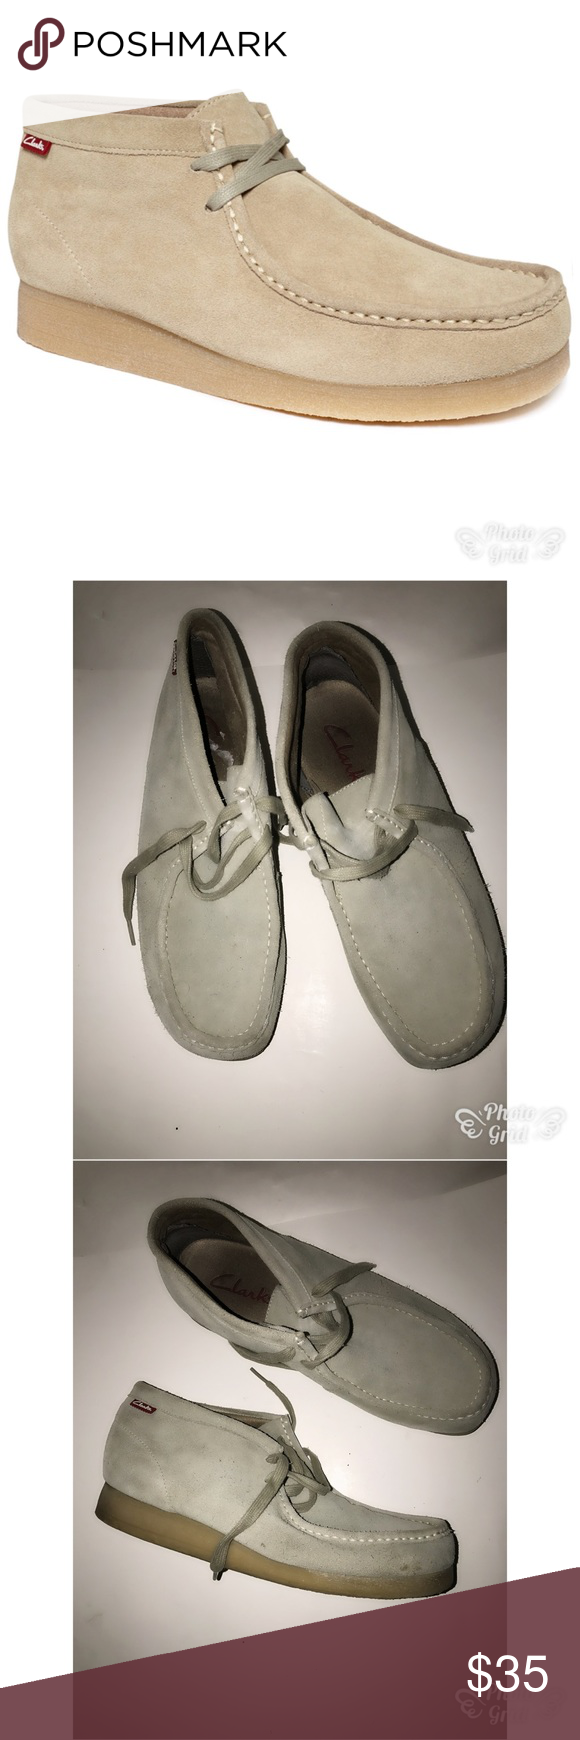 clarks clearance mens